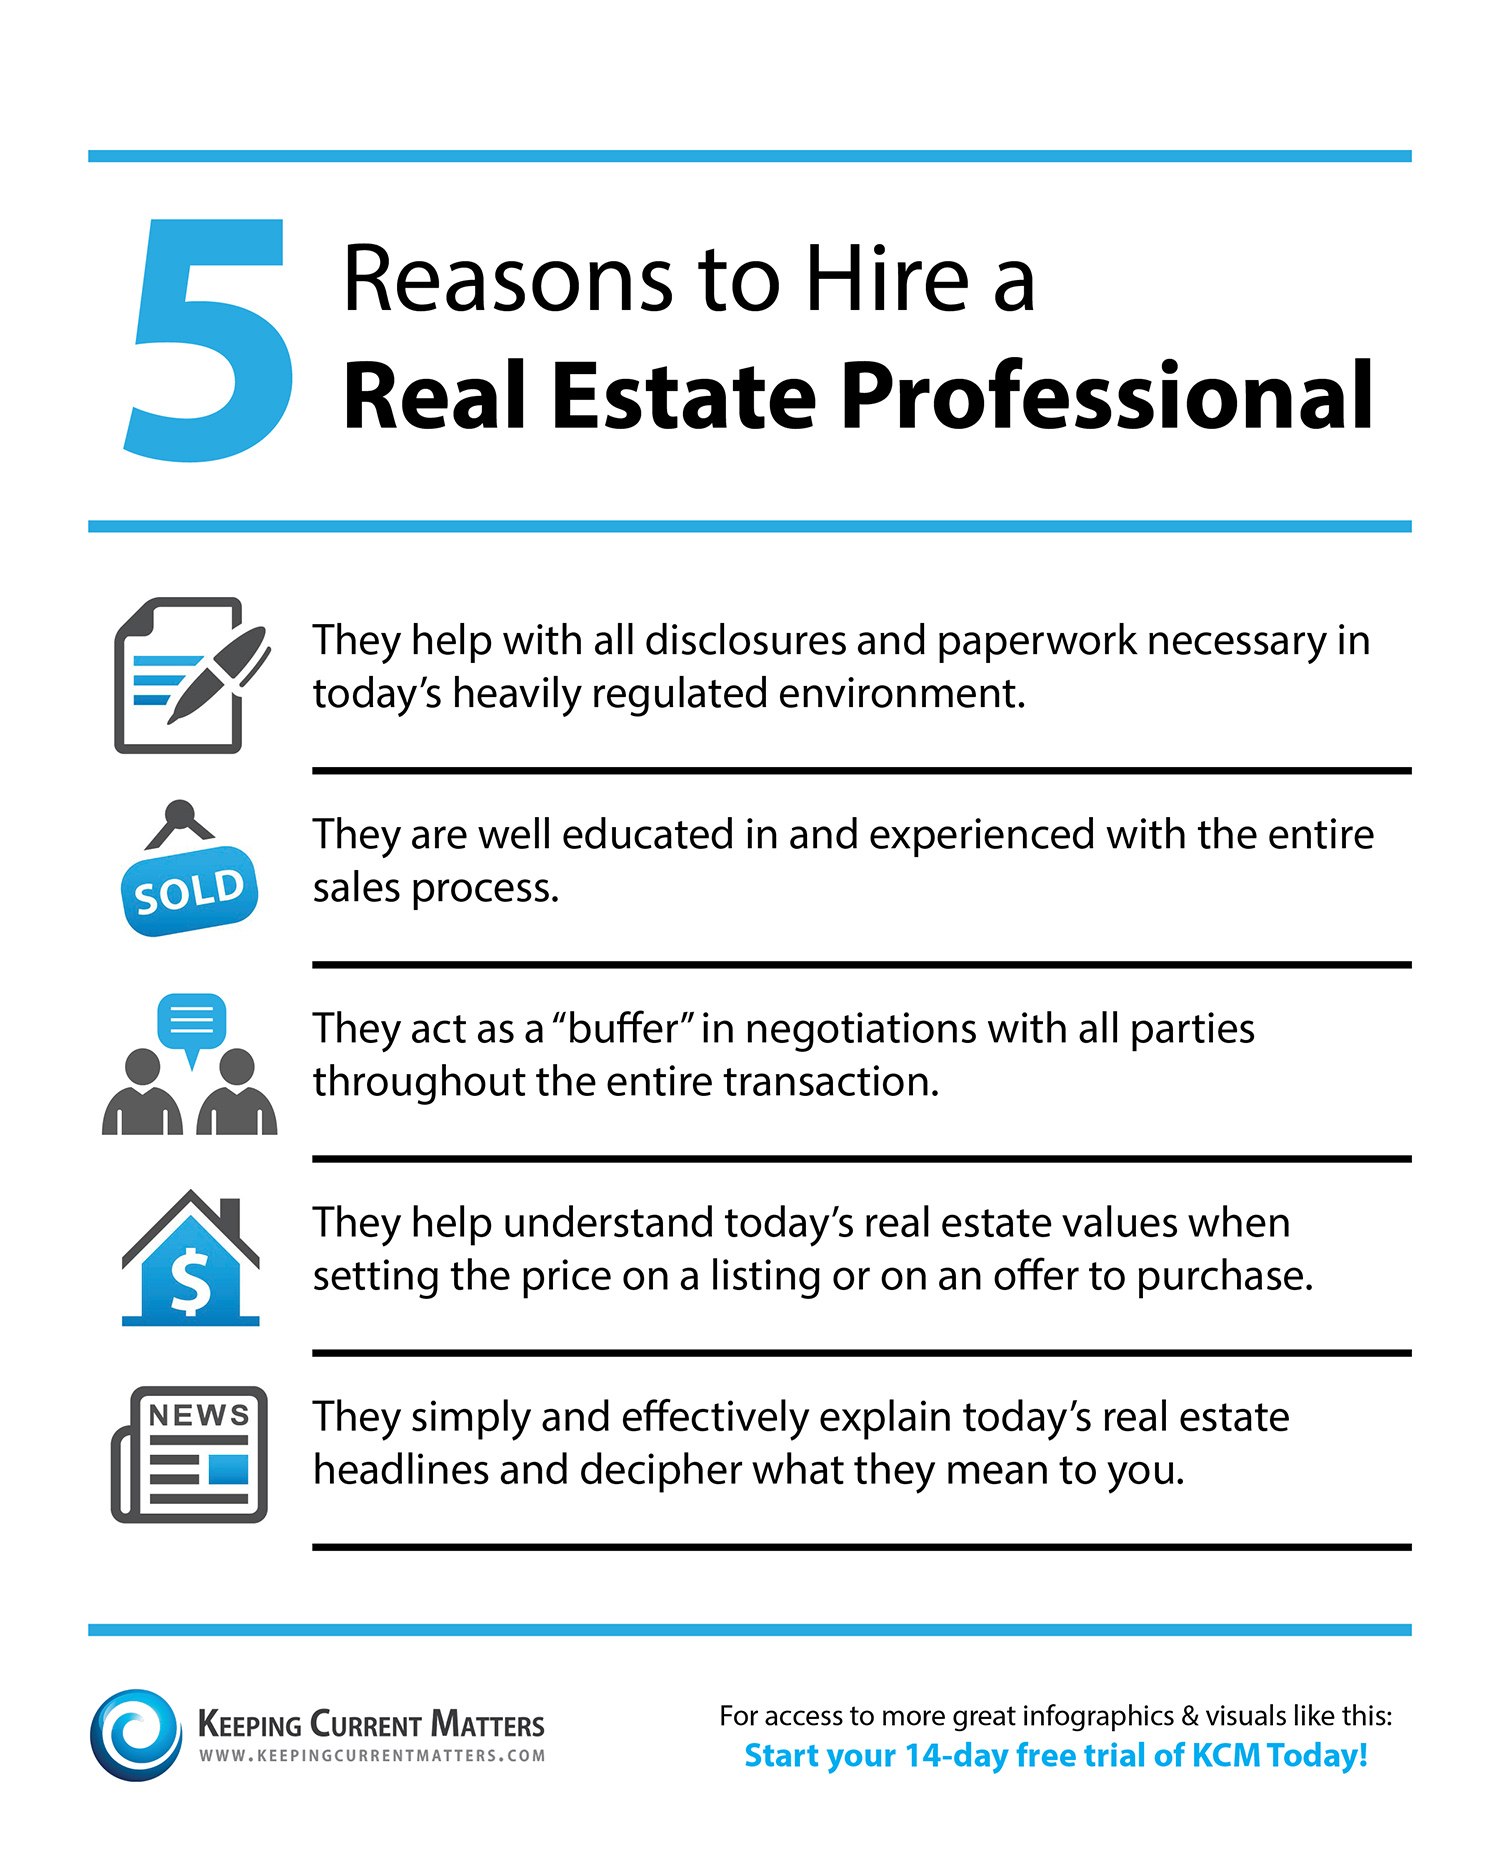 5 Reasons to Hire a Real Estate Professsional